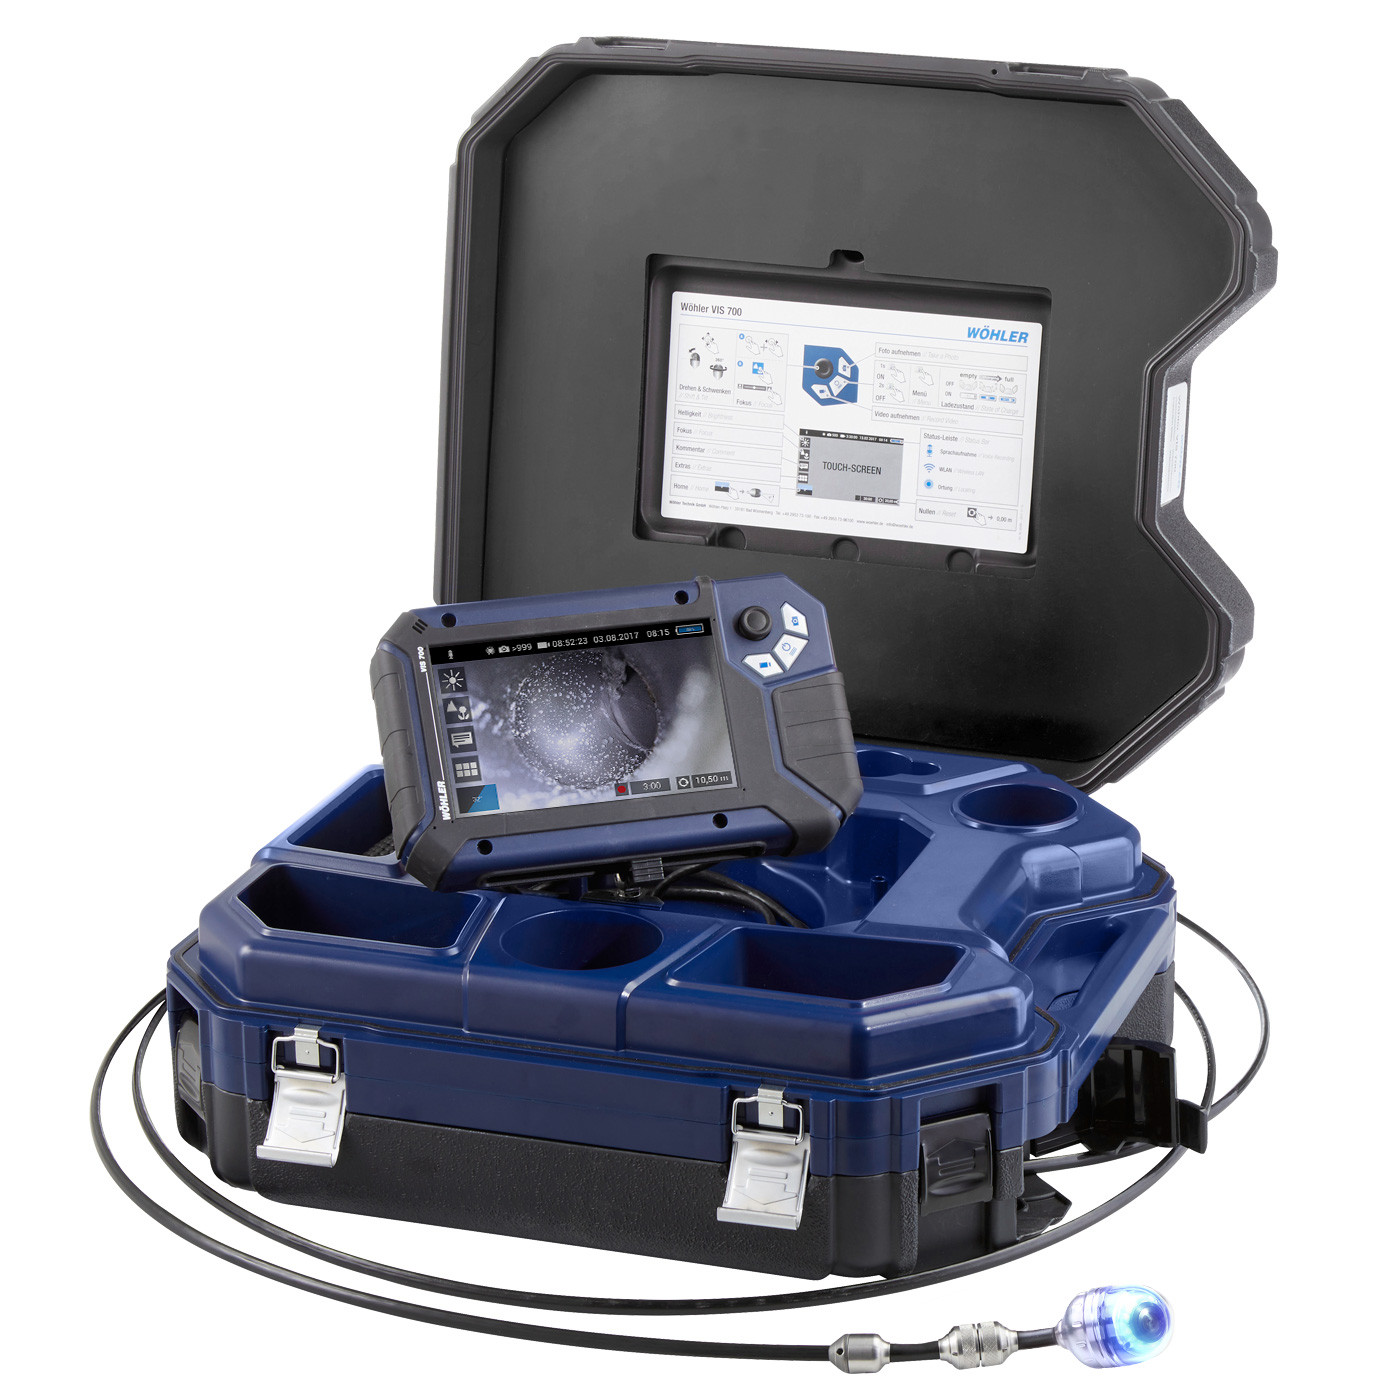 Wohler VIS 700 HD Inspection Camera